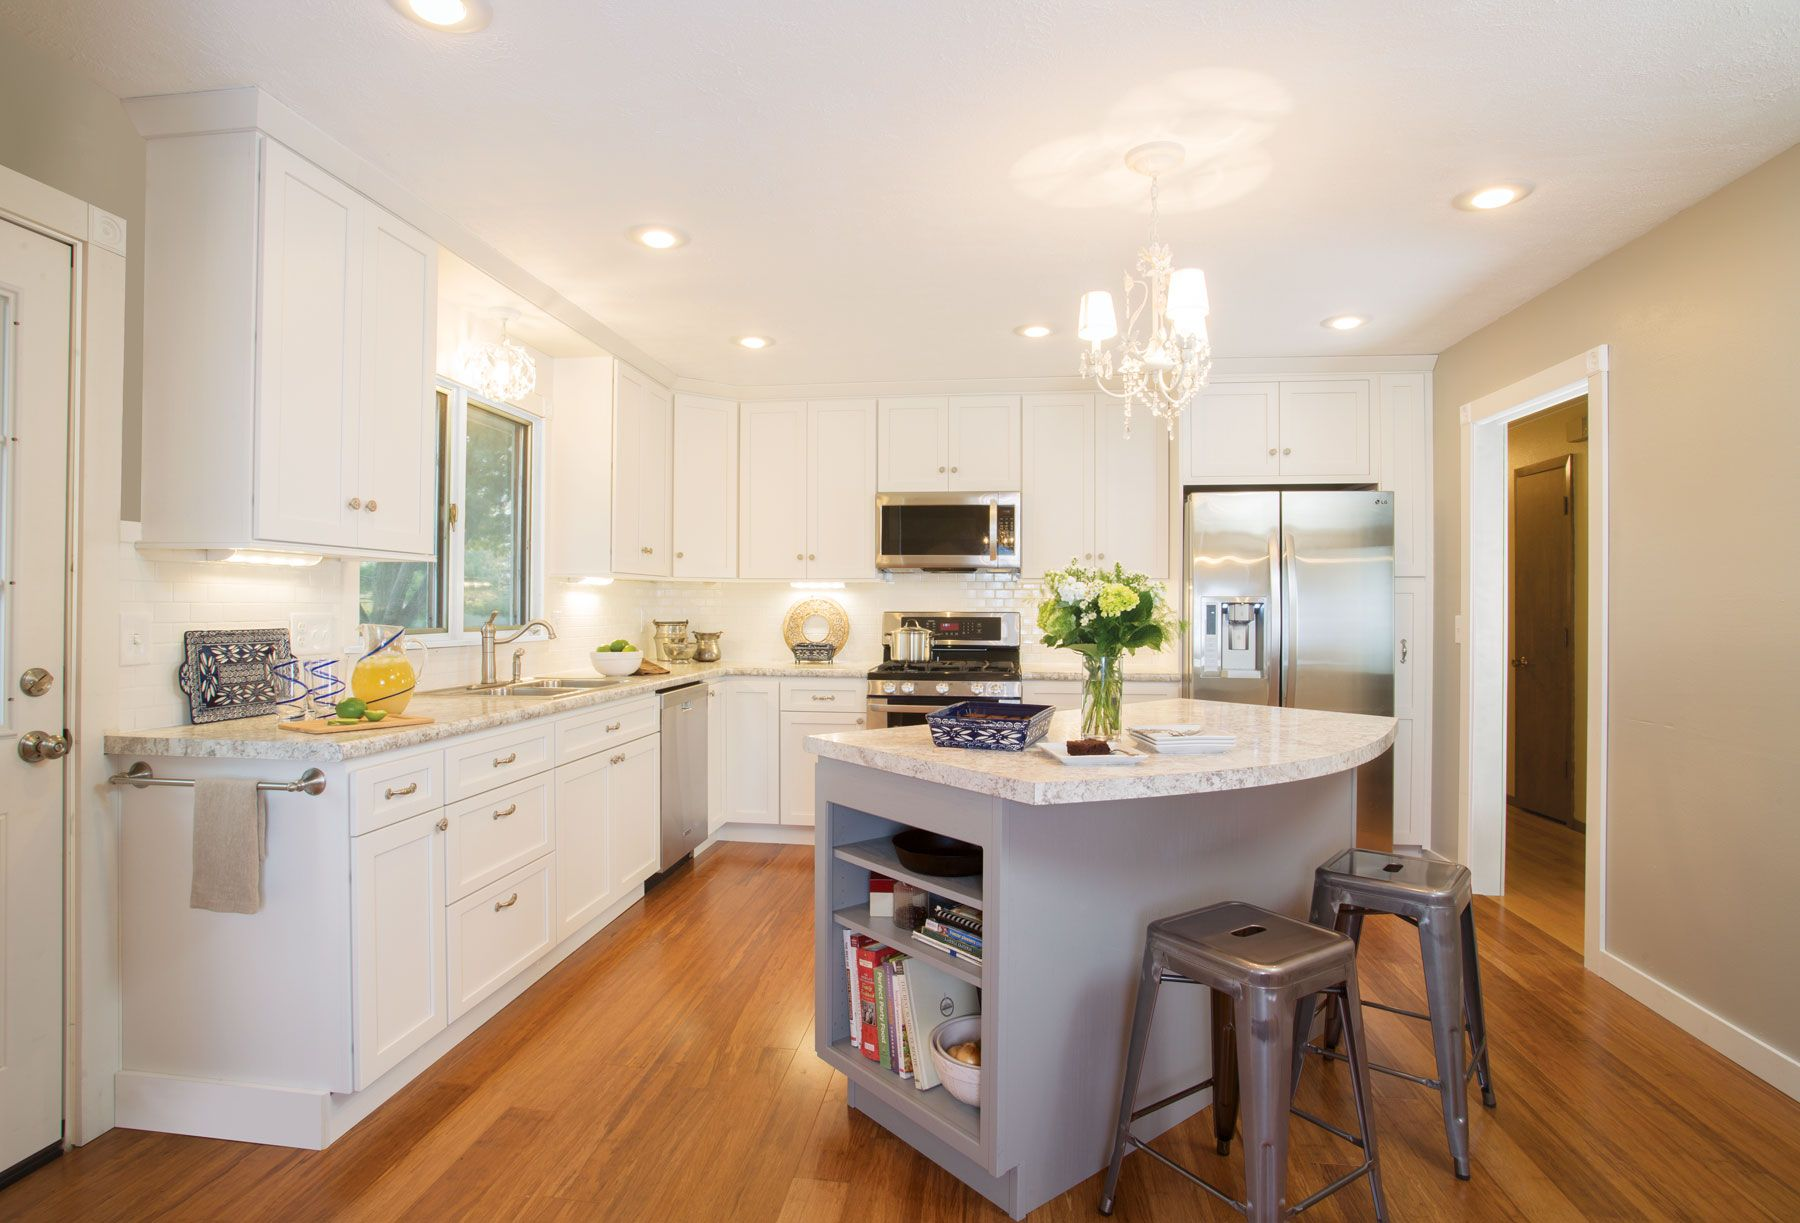 A Remodel In Central Sioux Falls Turned A Forgettable Kitchen Into A  Vibrant Gathering Space!